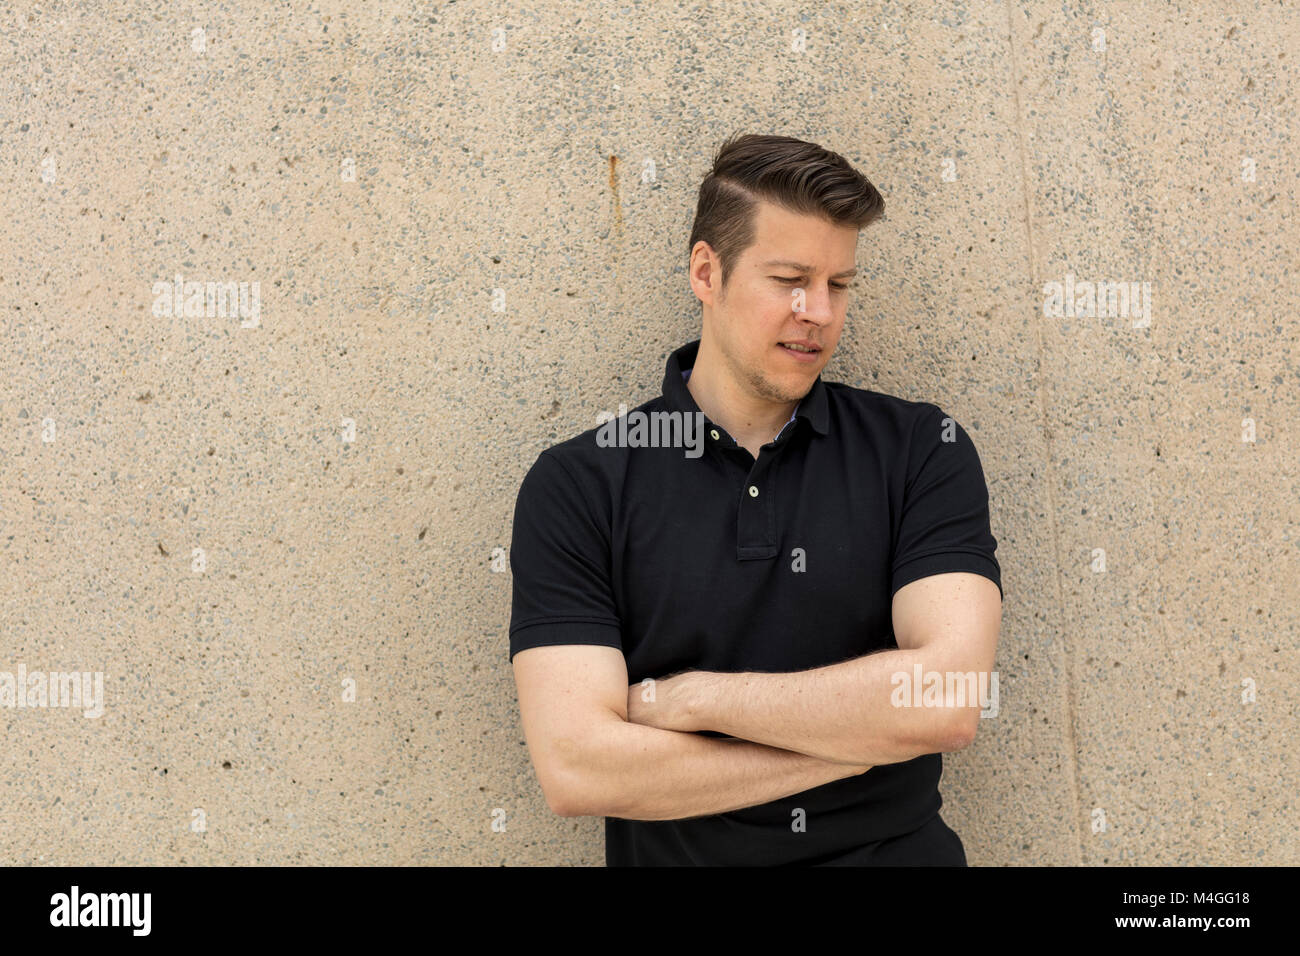 handsome man portrait pose in front on an outdoor beige wall on a